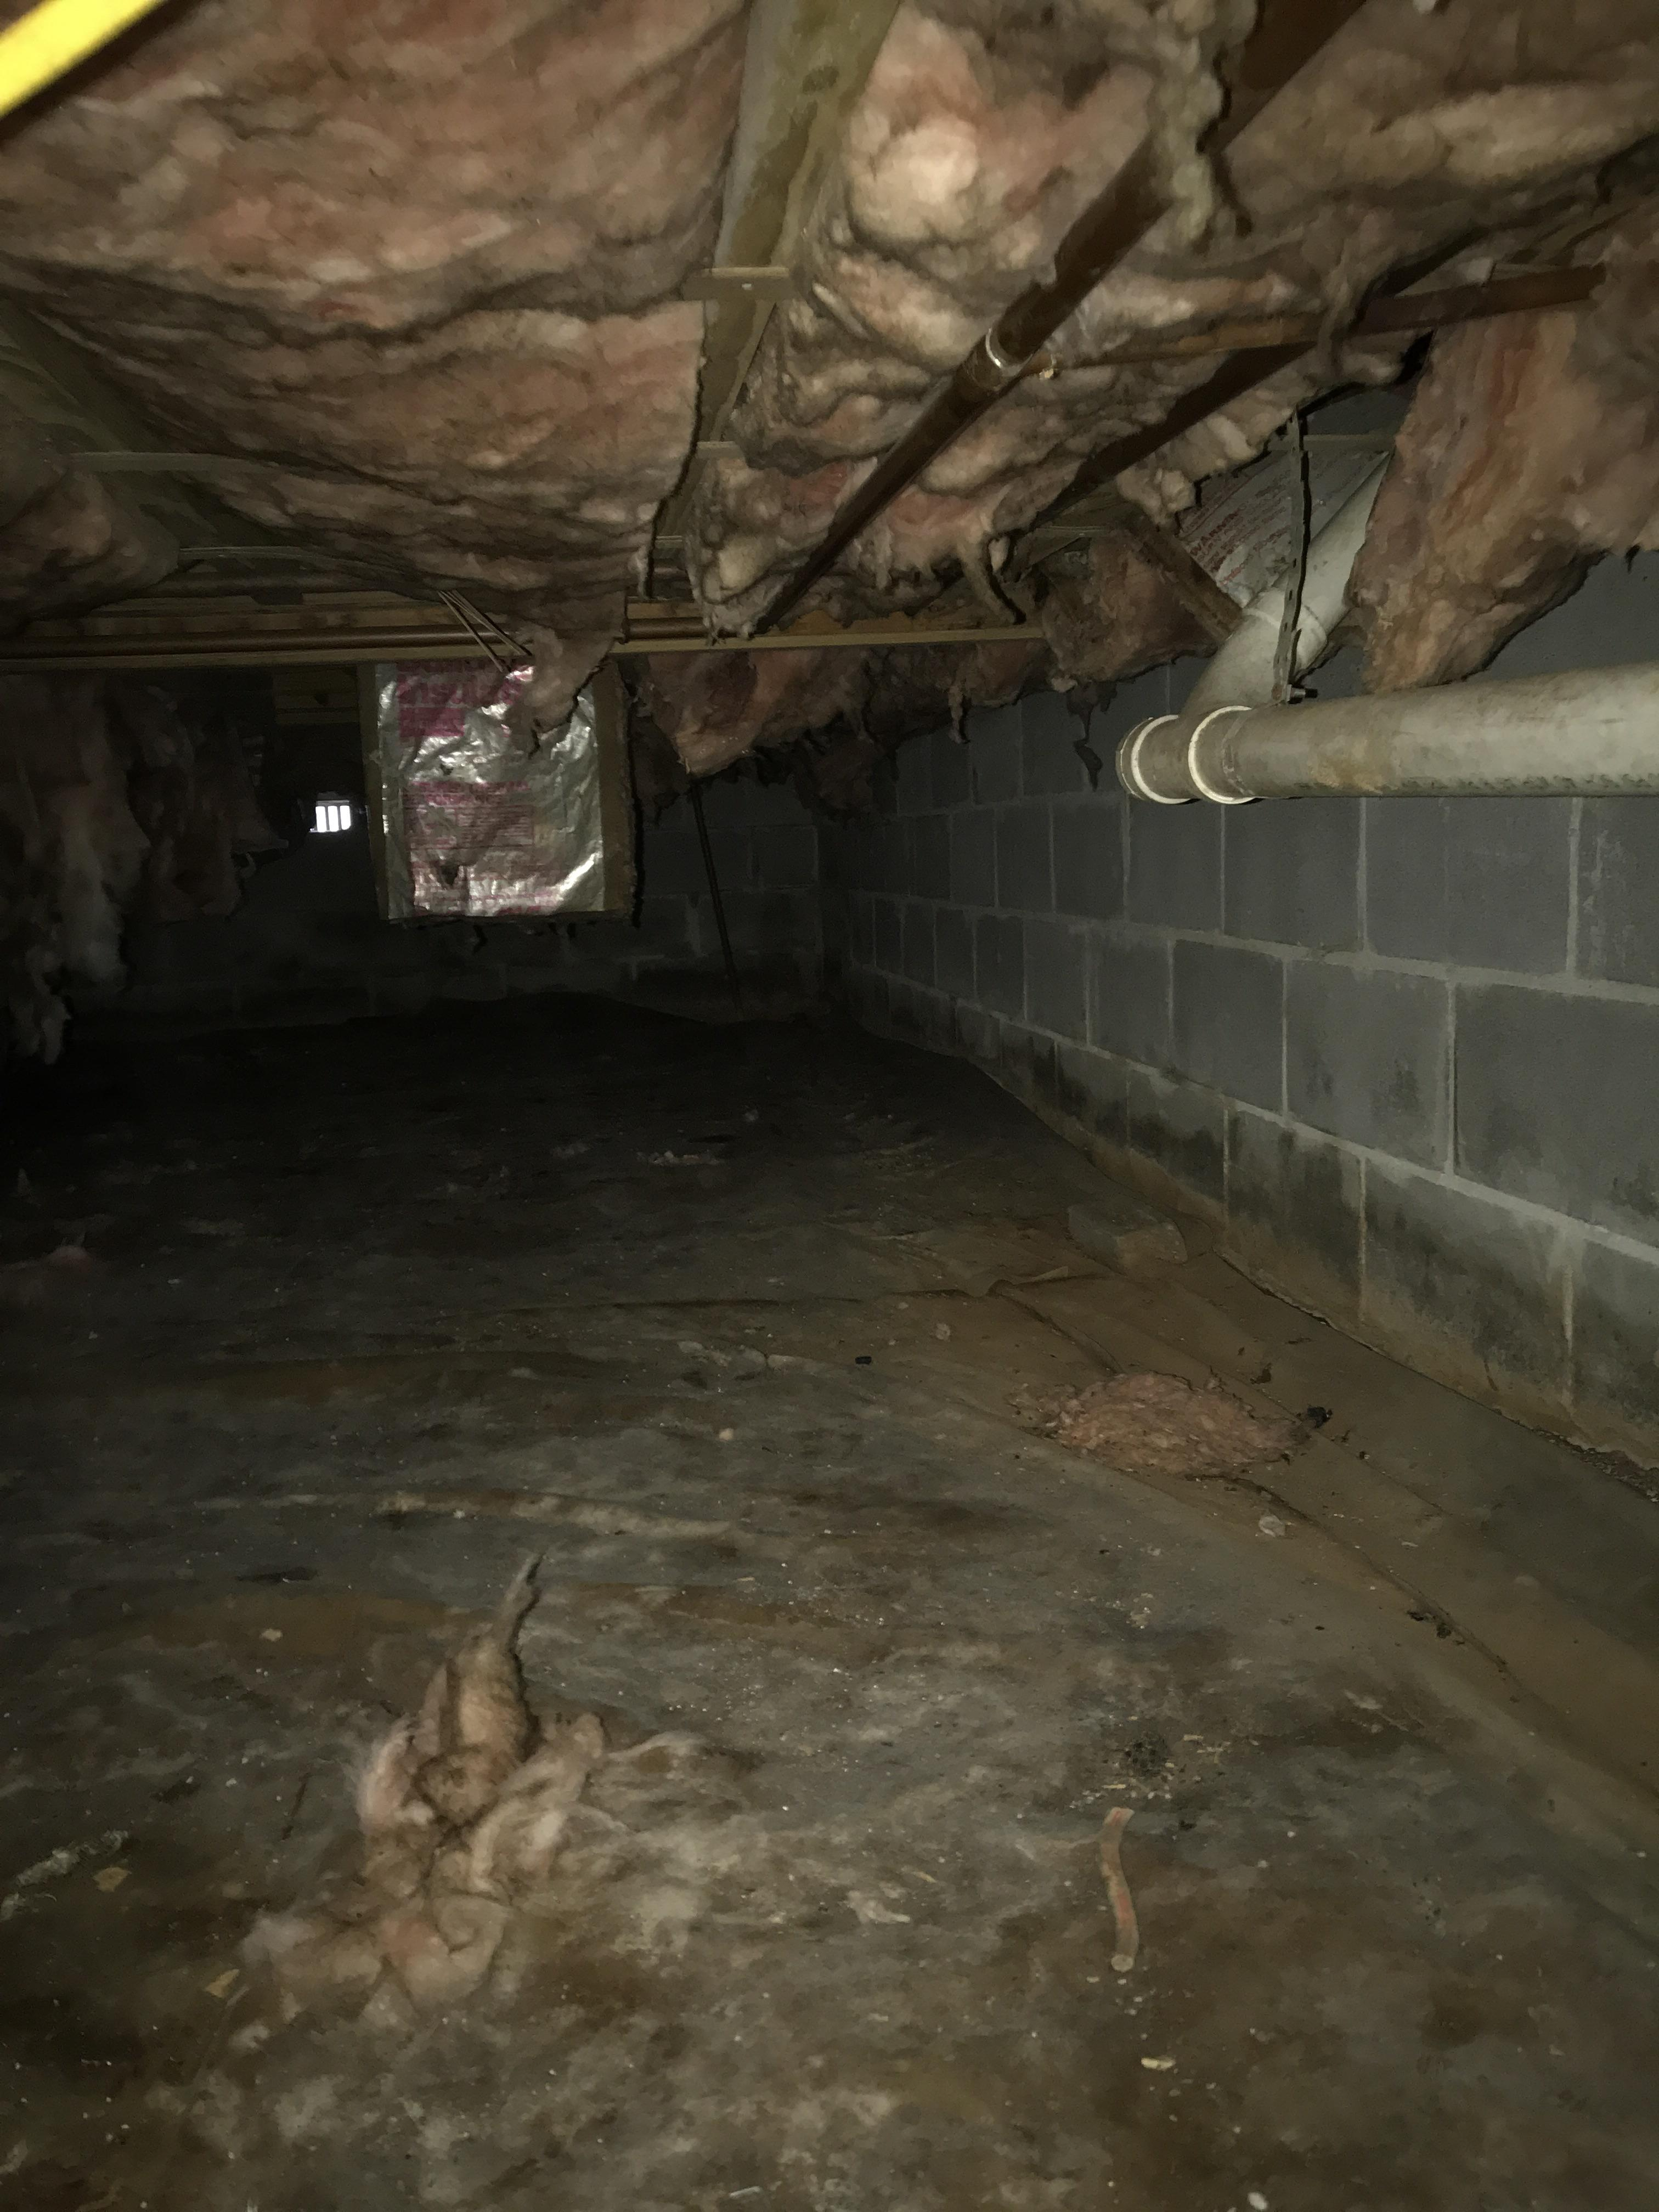 Water intrusion and water marks on cinder block walls in crawlspace